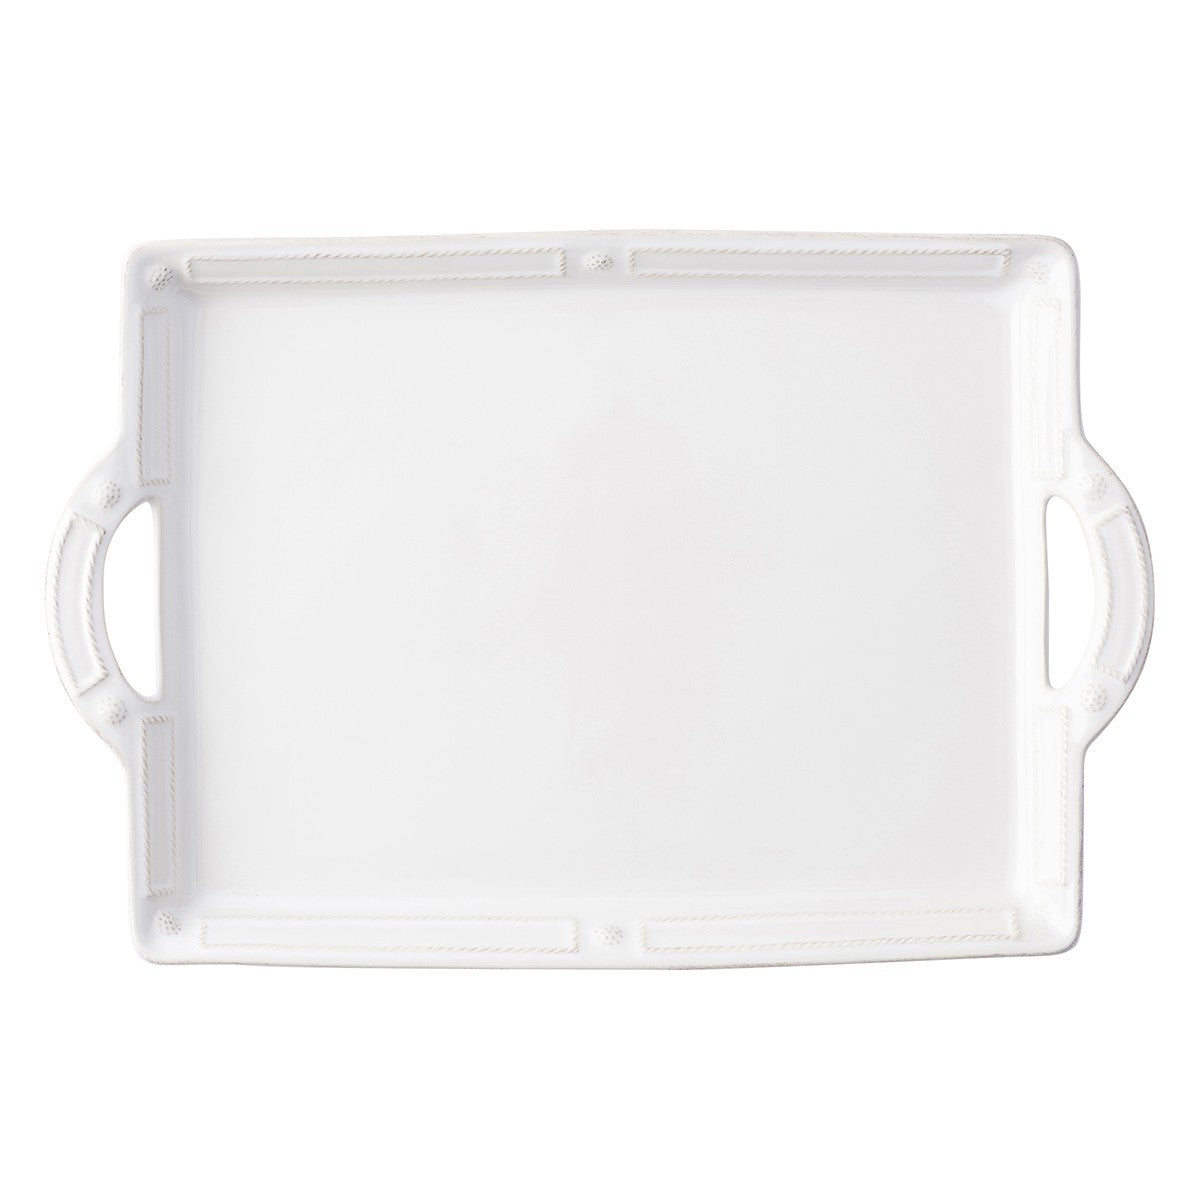 Juliska Berry & Thread French Panel Whitewash Platter